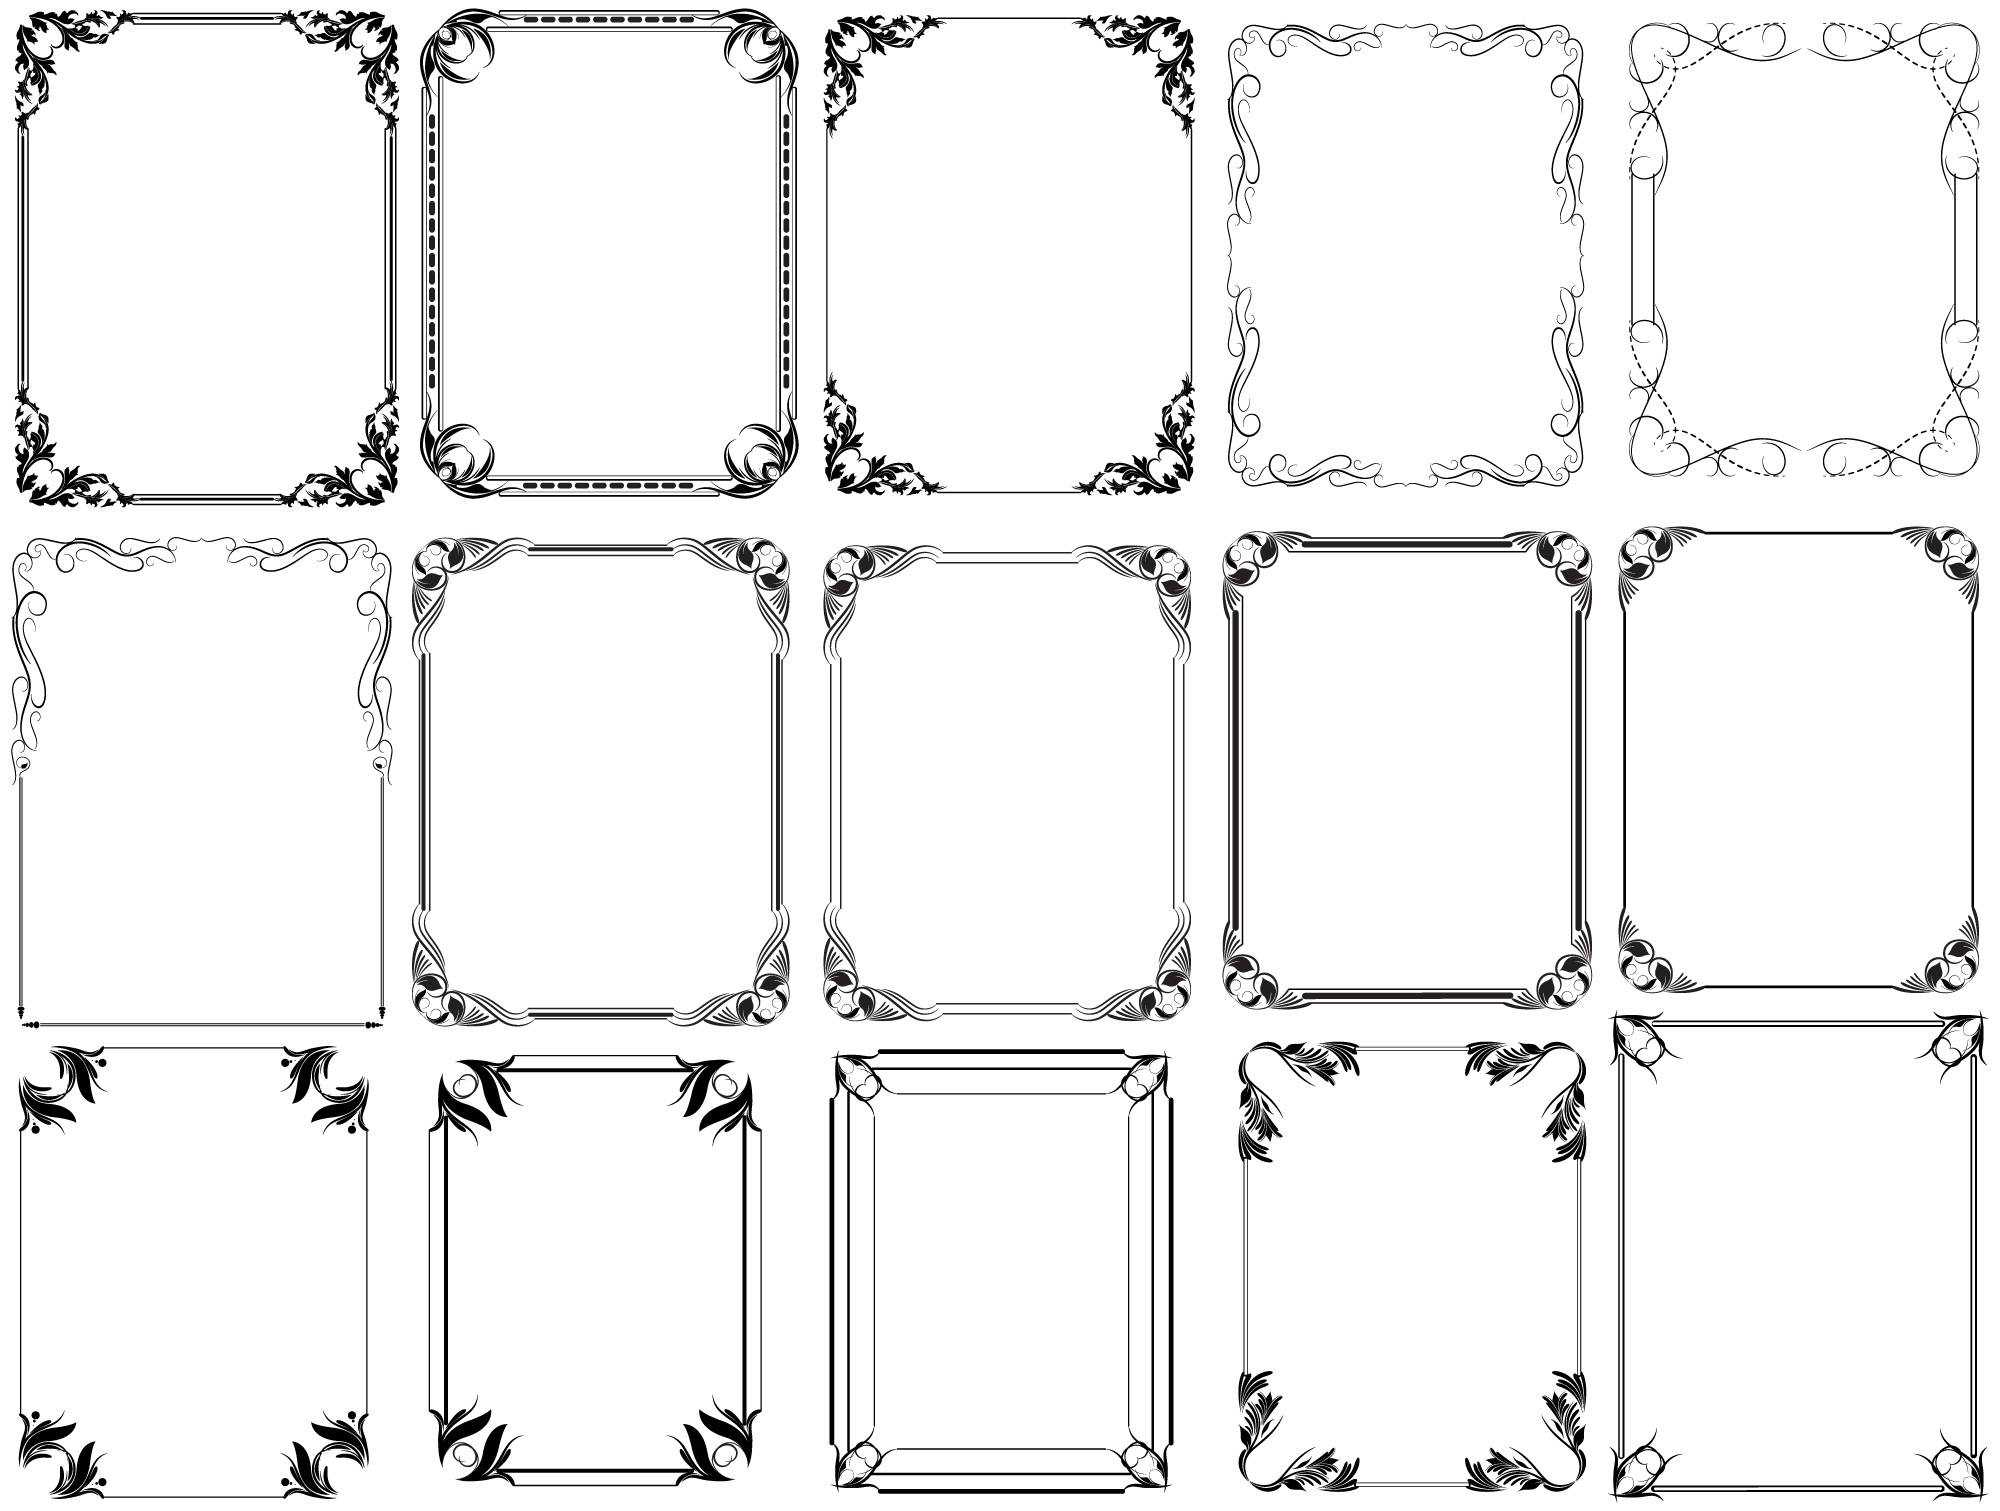 10 Free Photoshop Frames PNG Images - Free Photoshop ...